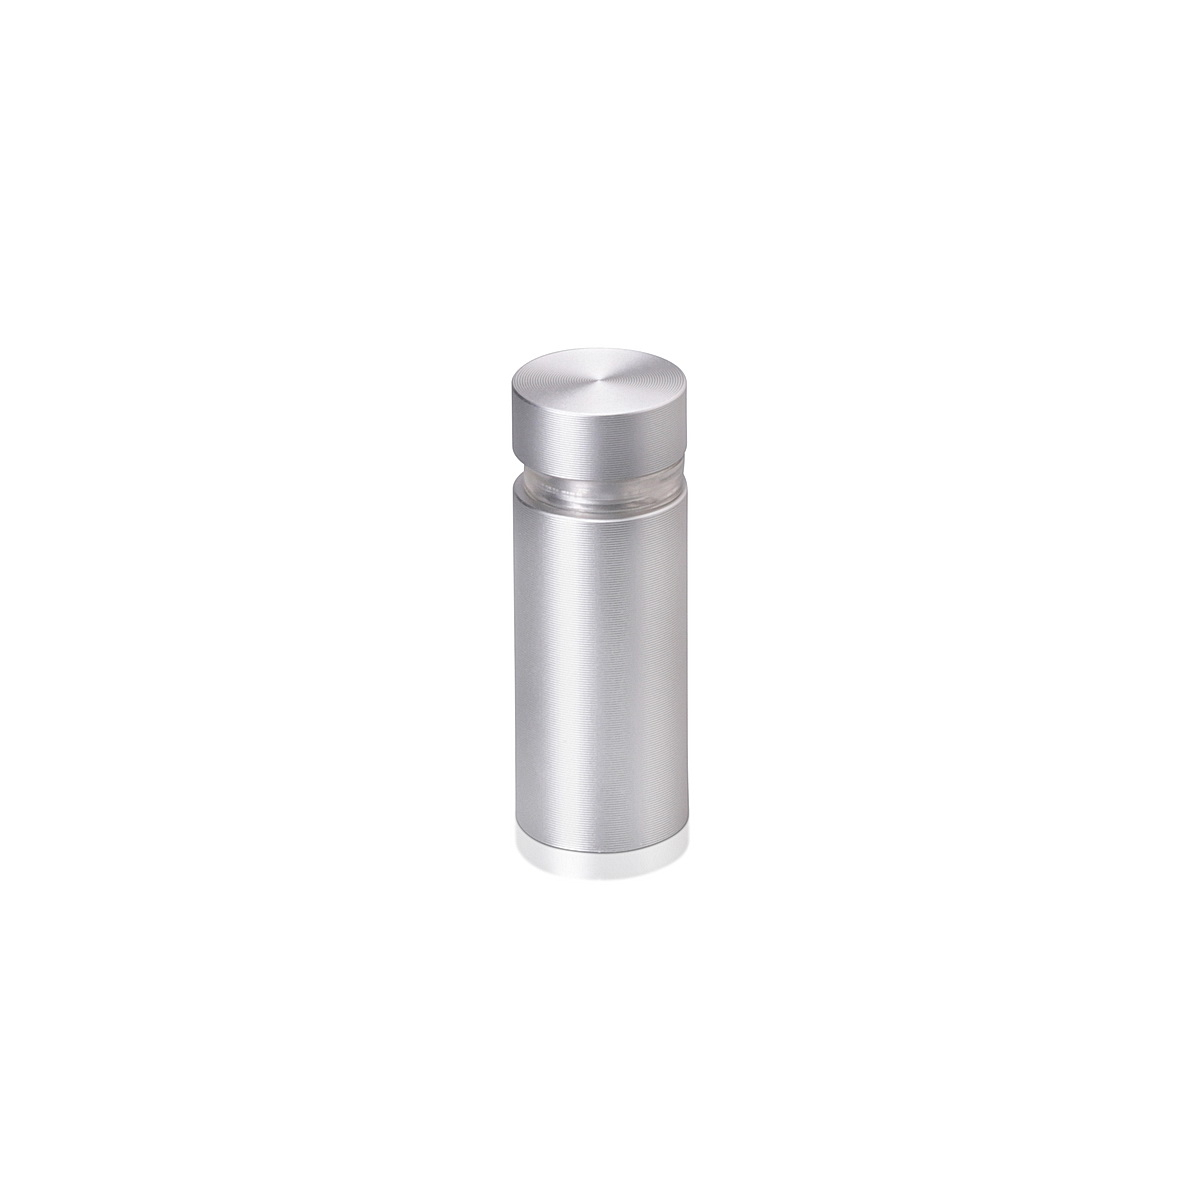 1/2'' Diameter X 1'' Barrel Length, Aluminum Flat Head Standoffs, Clear Anodized Finish Easy Fasten Standoff (For Inside / Outside use) Tamper Proof Standoff